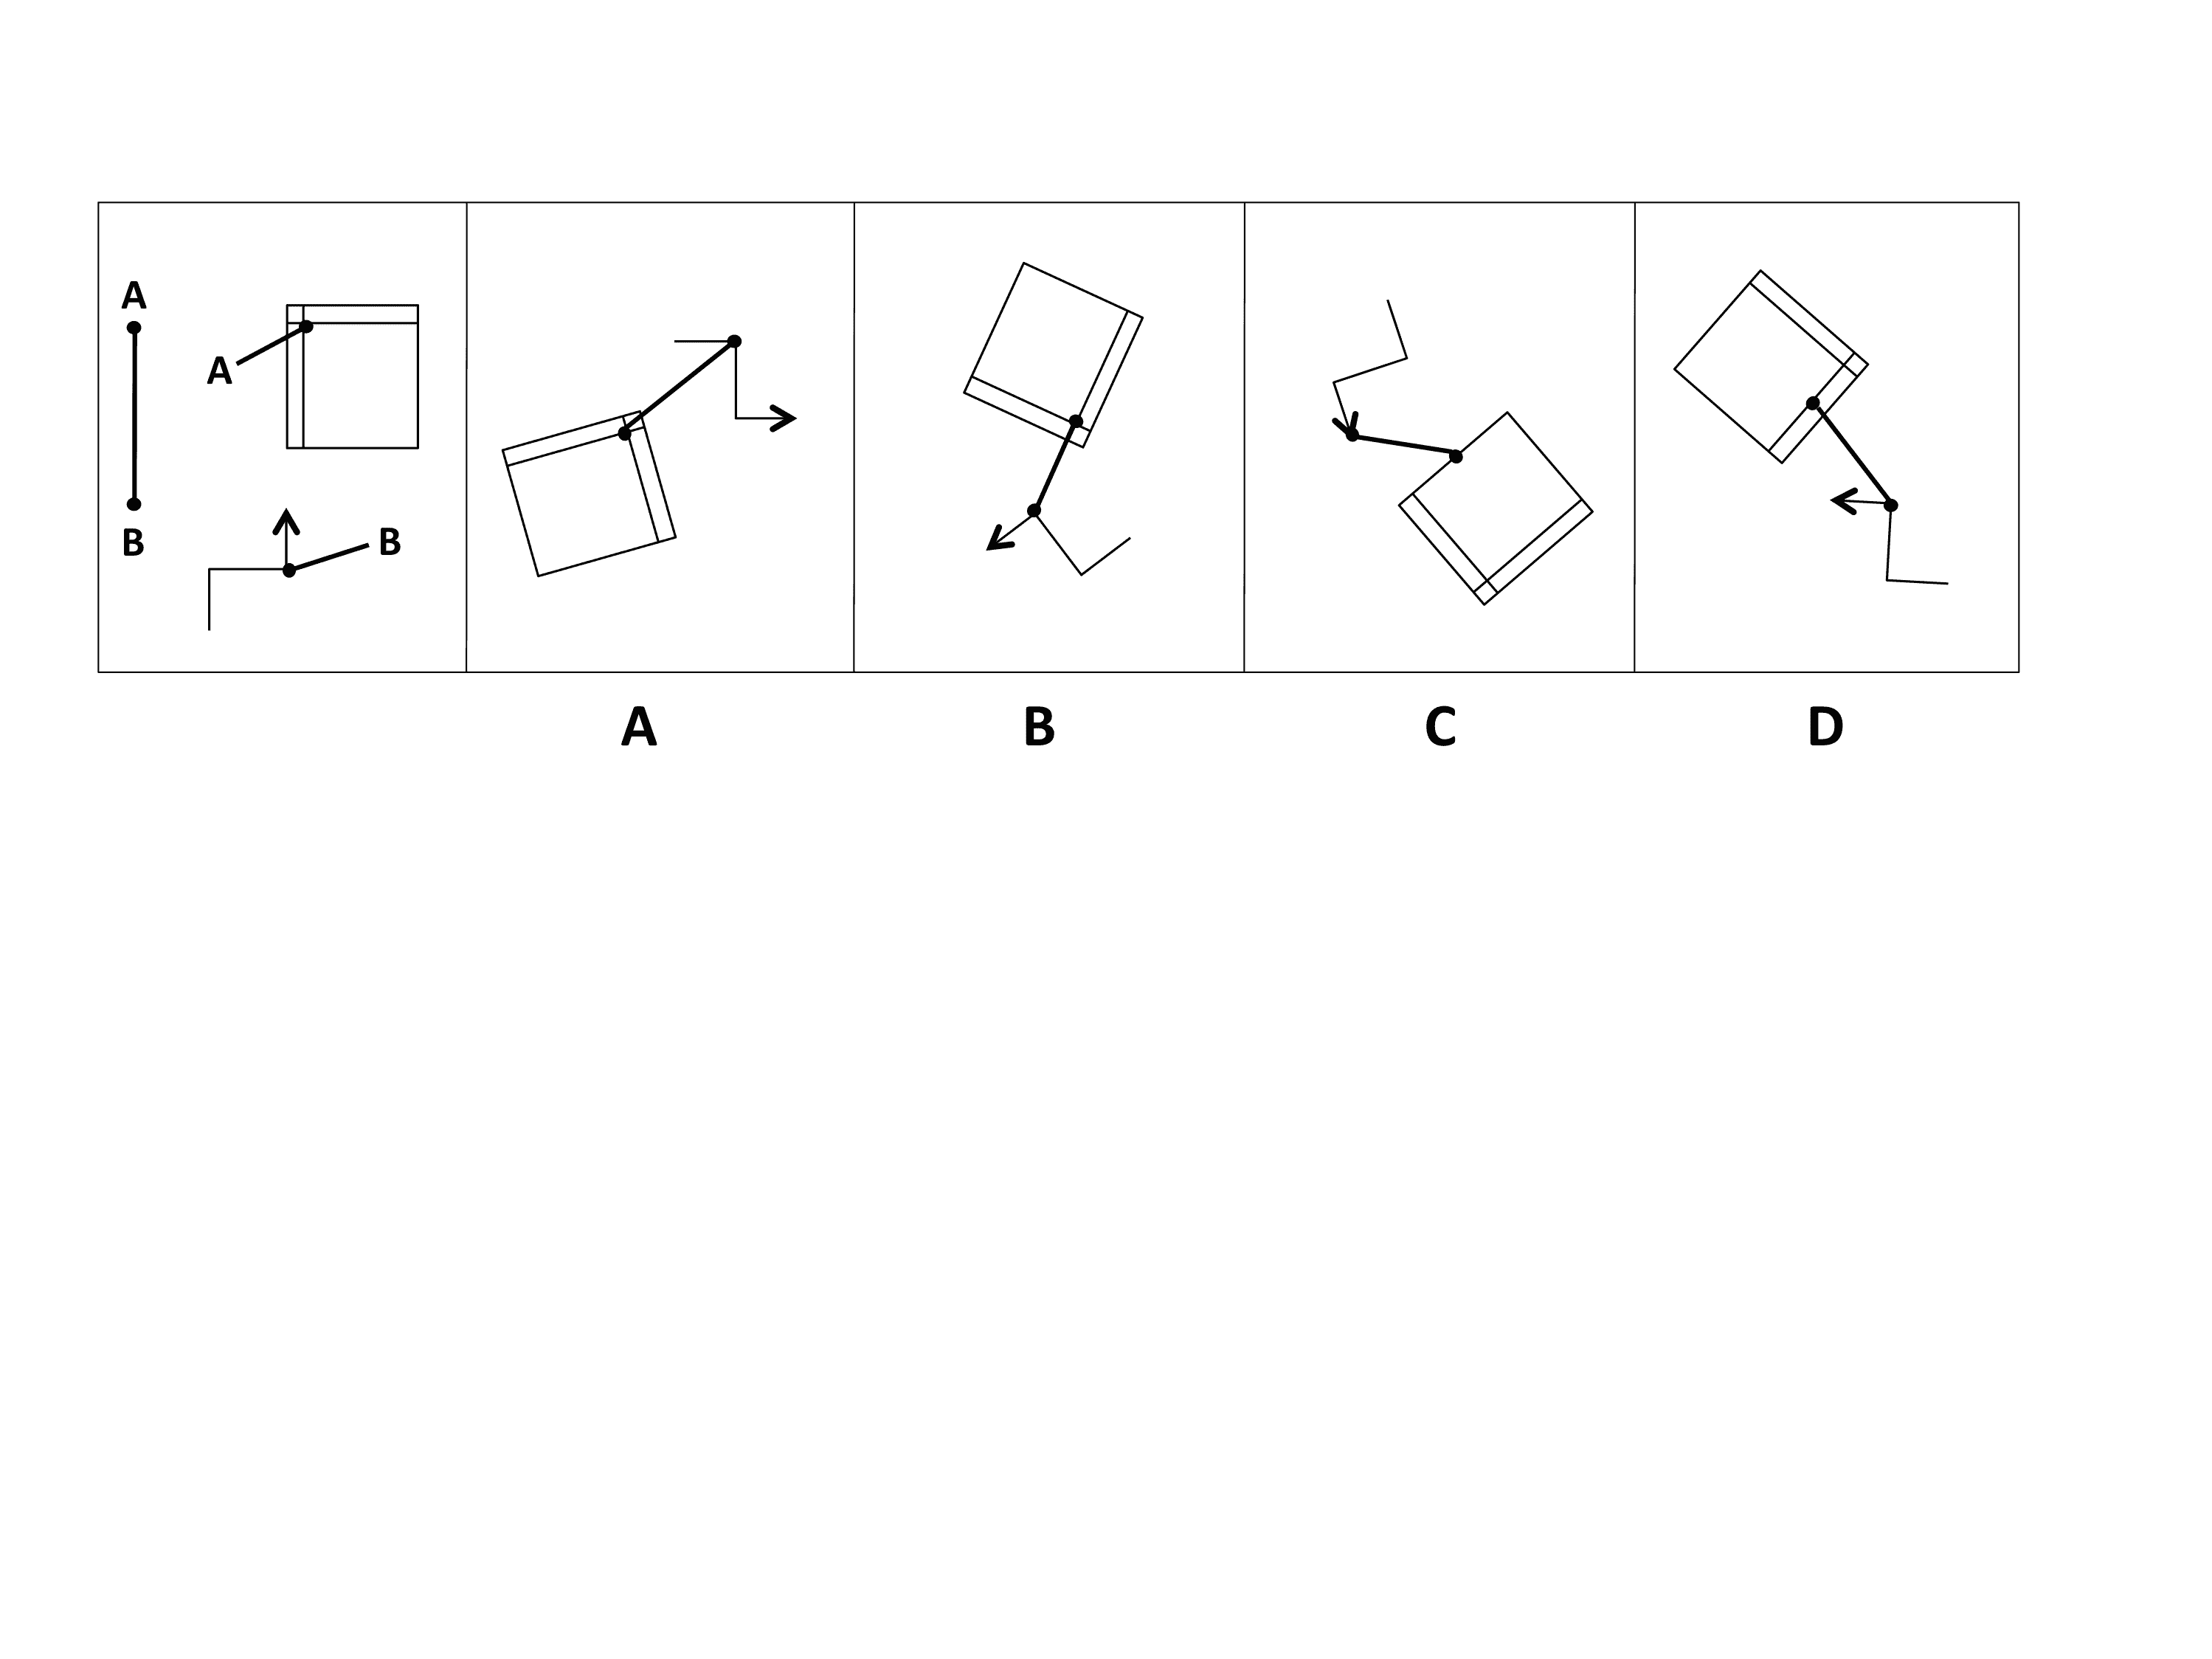 Question 15 of the Assembling Objects Practice Test for the ASVAB